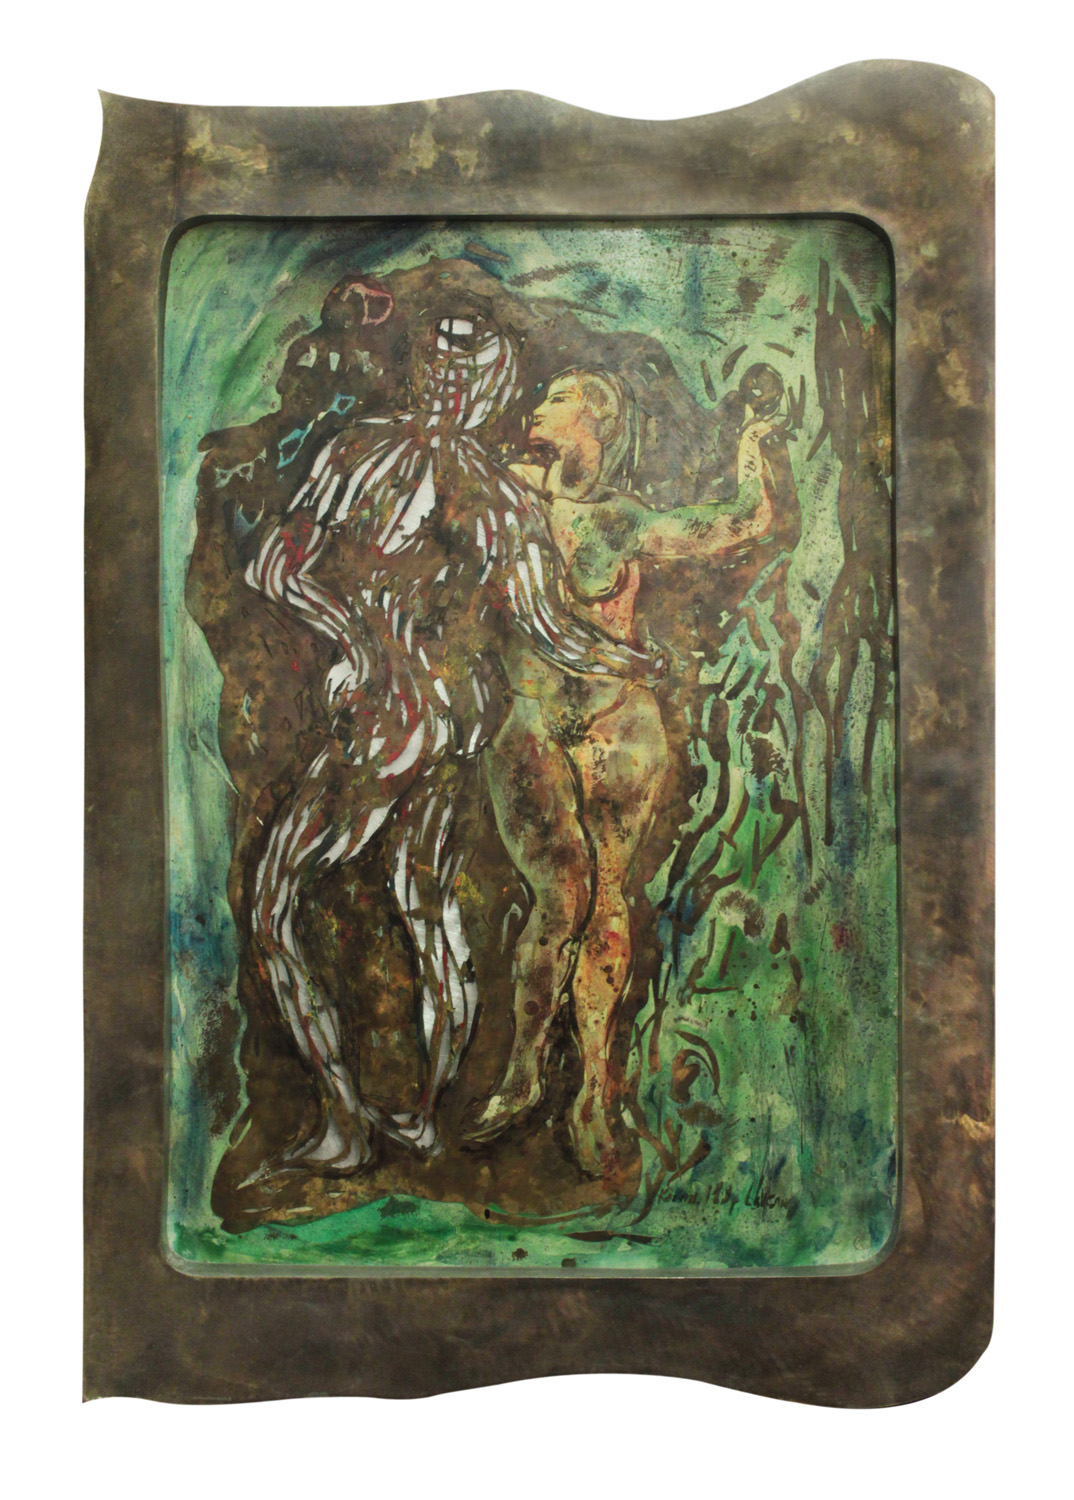 Laverne 180 Adam & Eve wall sculpture75 hires.jpg